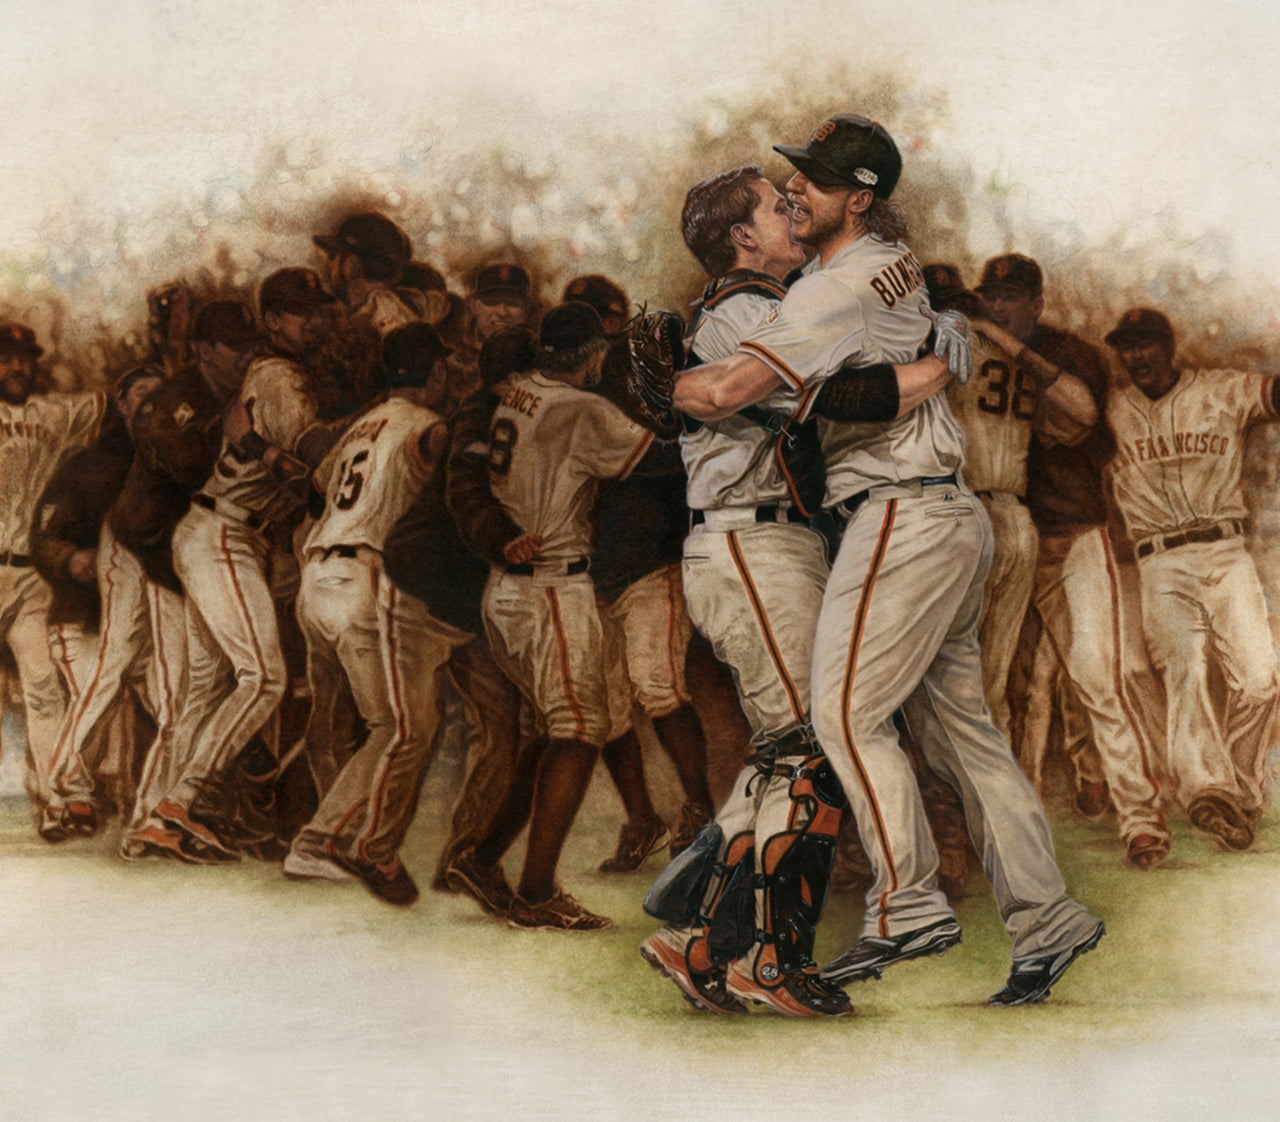 SF Giants World Champions Celebration - Oil on Canvas 32x44